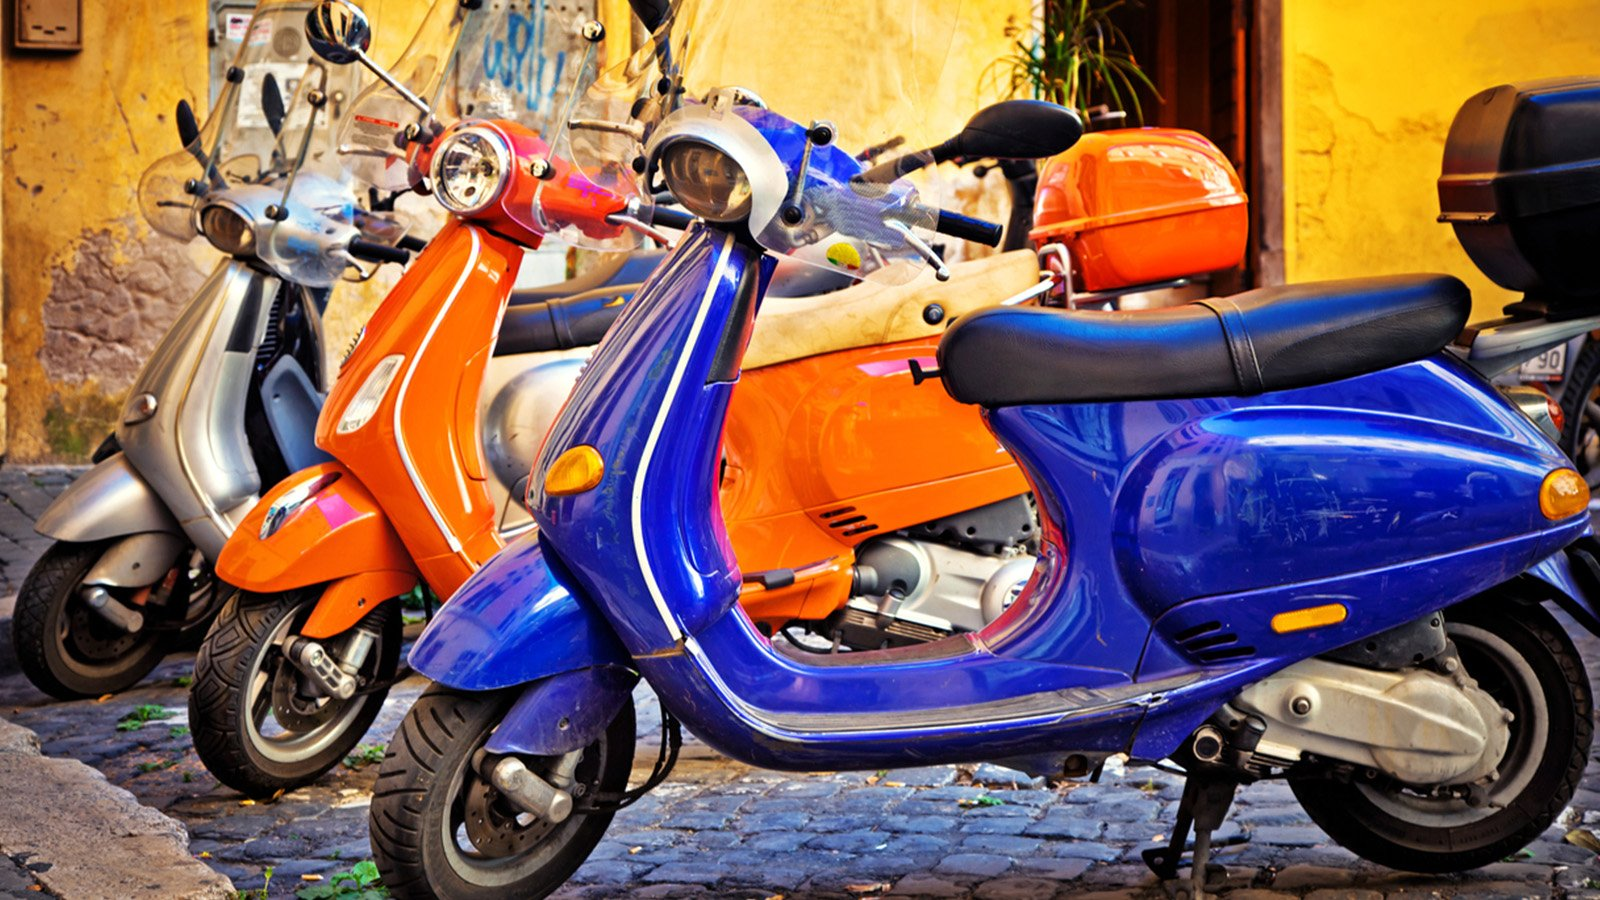 Three Vespa's in blue, silver and orange in the streets of Rome